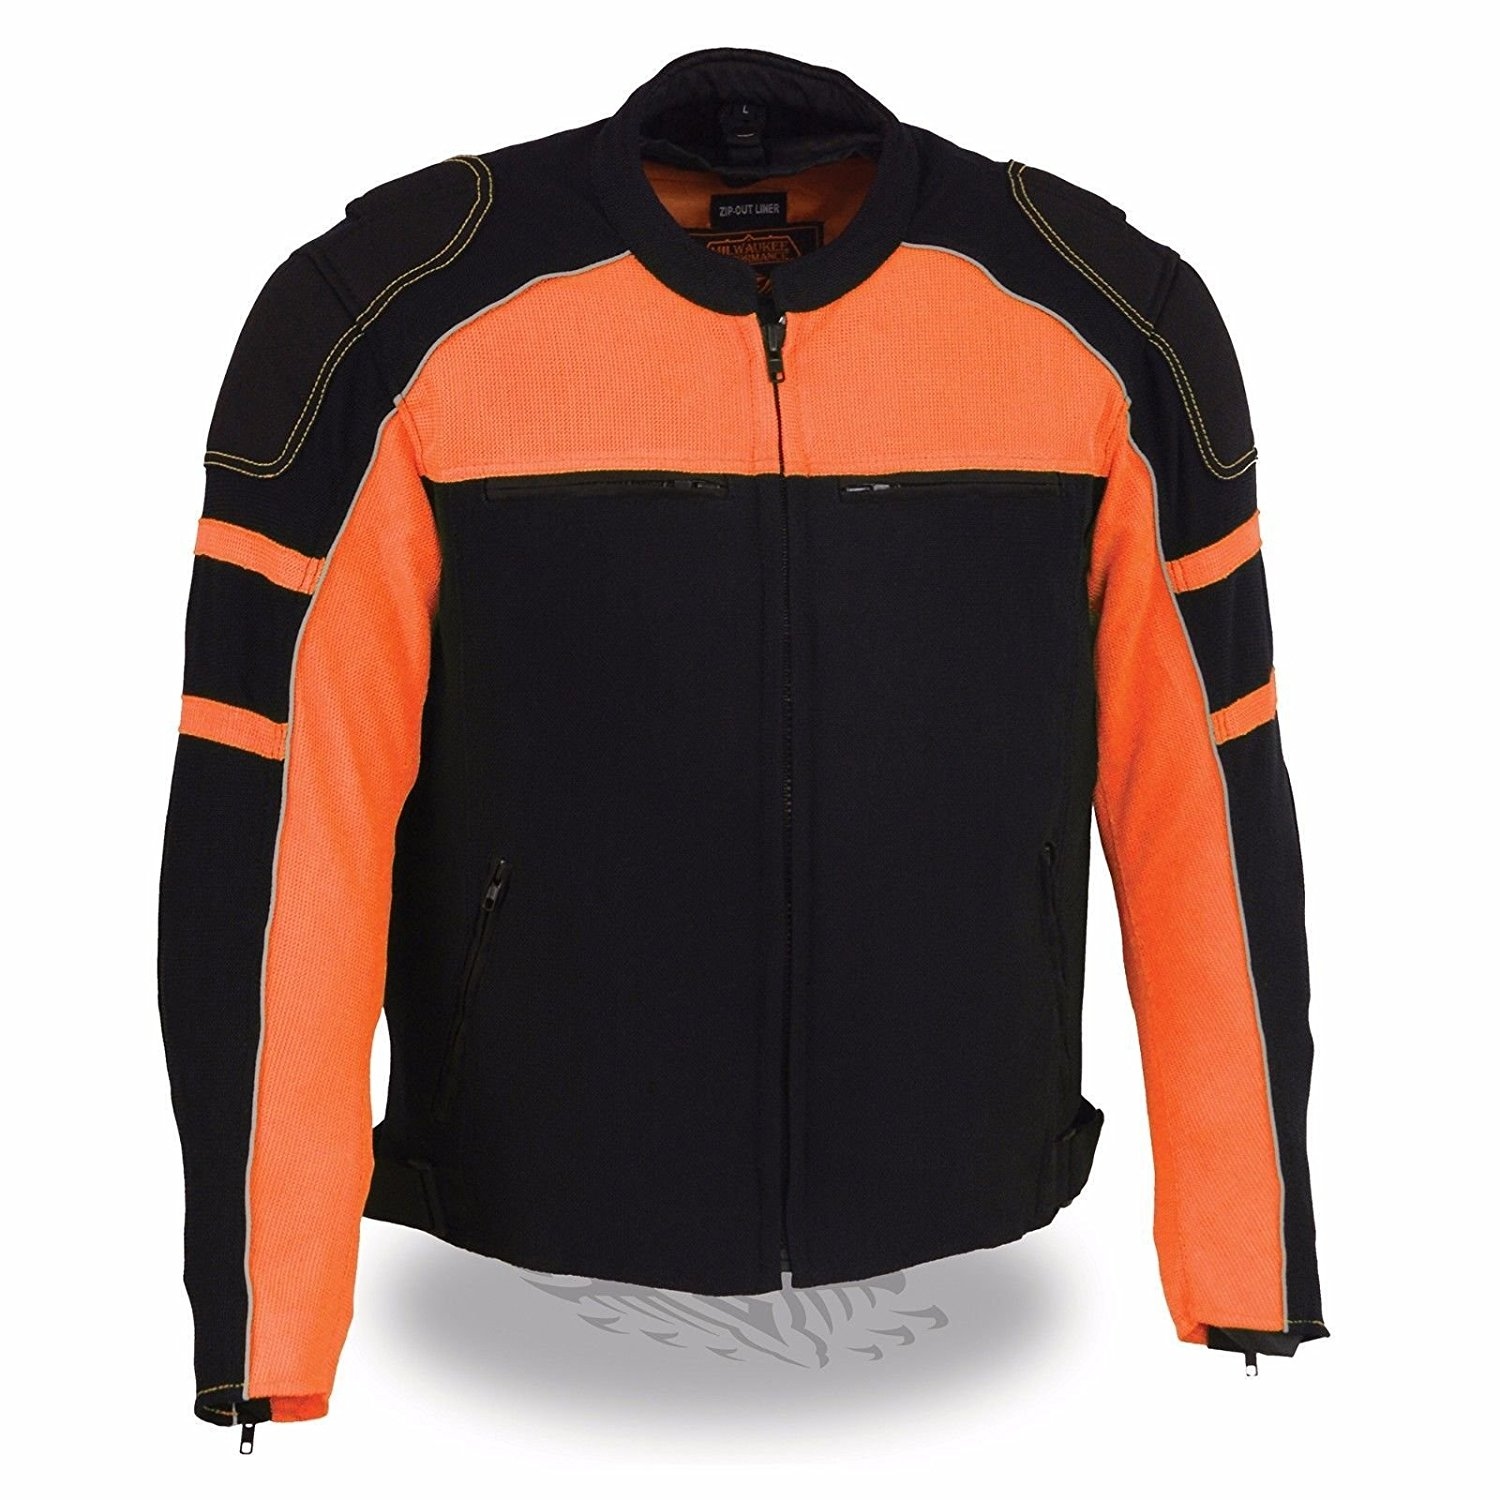 Mens Motorcycle Riding armors & Rain jacket Liner Mesh Blk/Orange Jacket (L Regular)